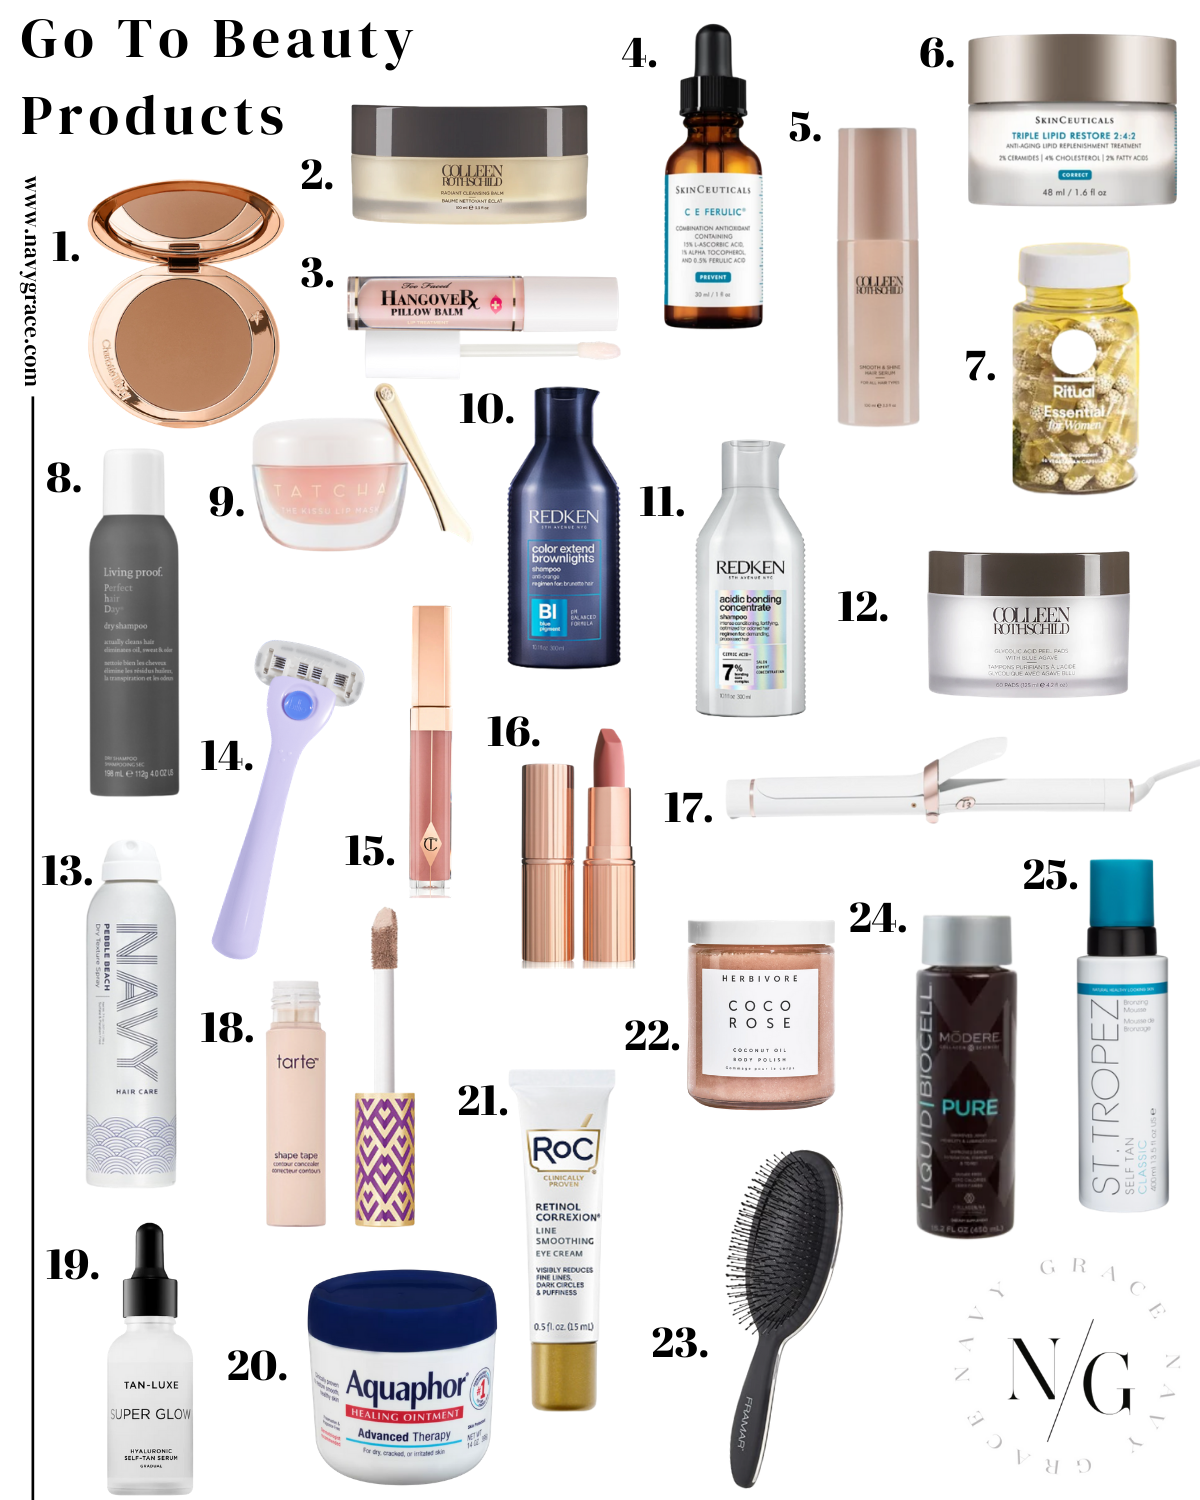 a collage of best go to beauty products